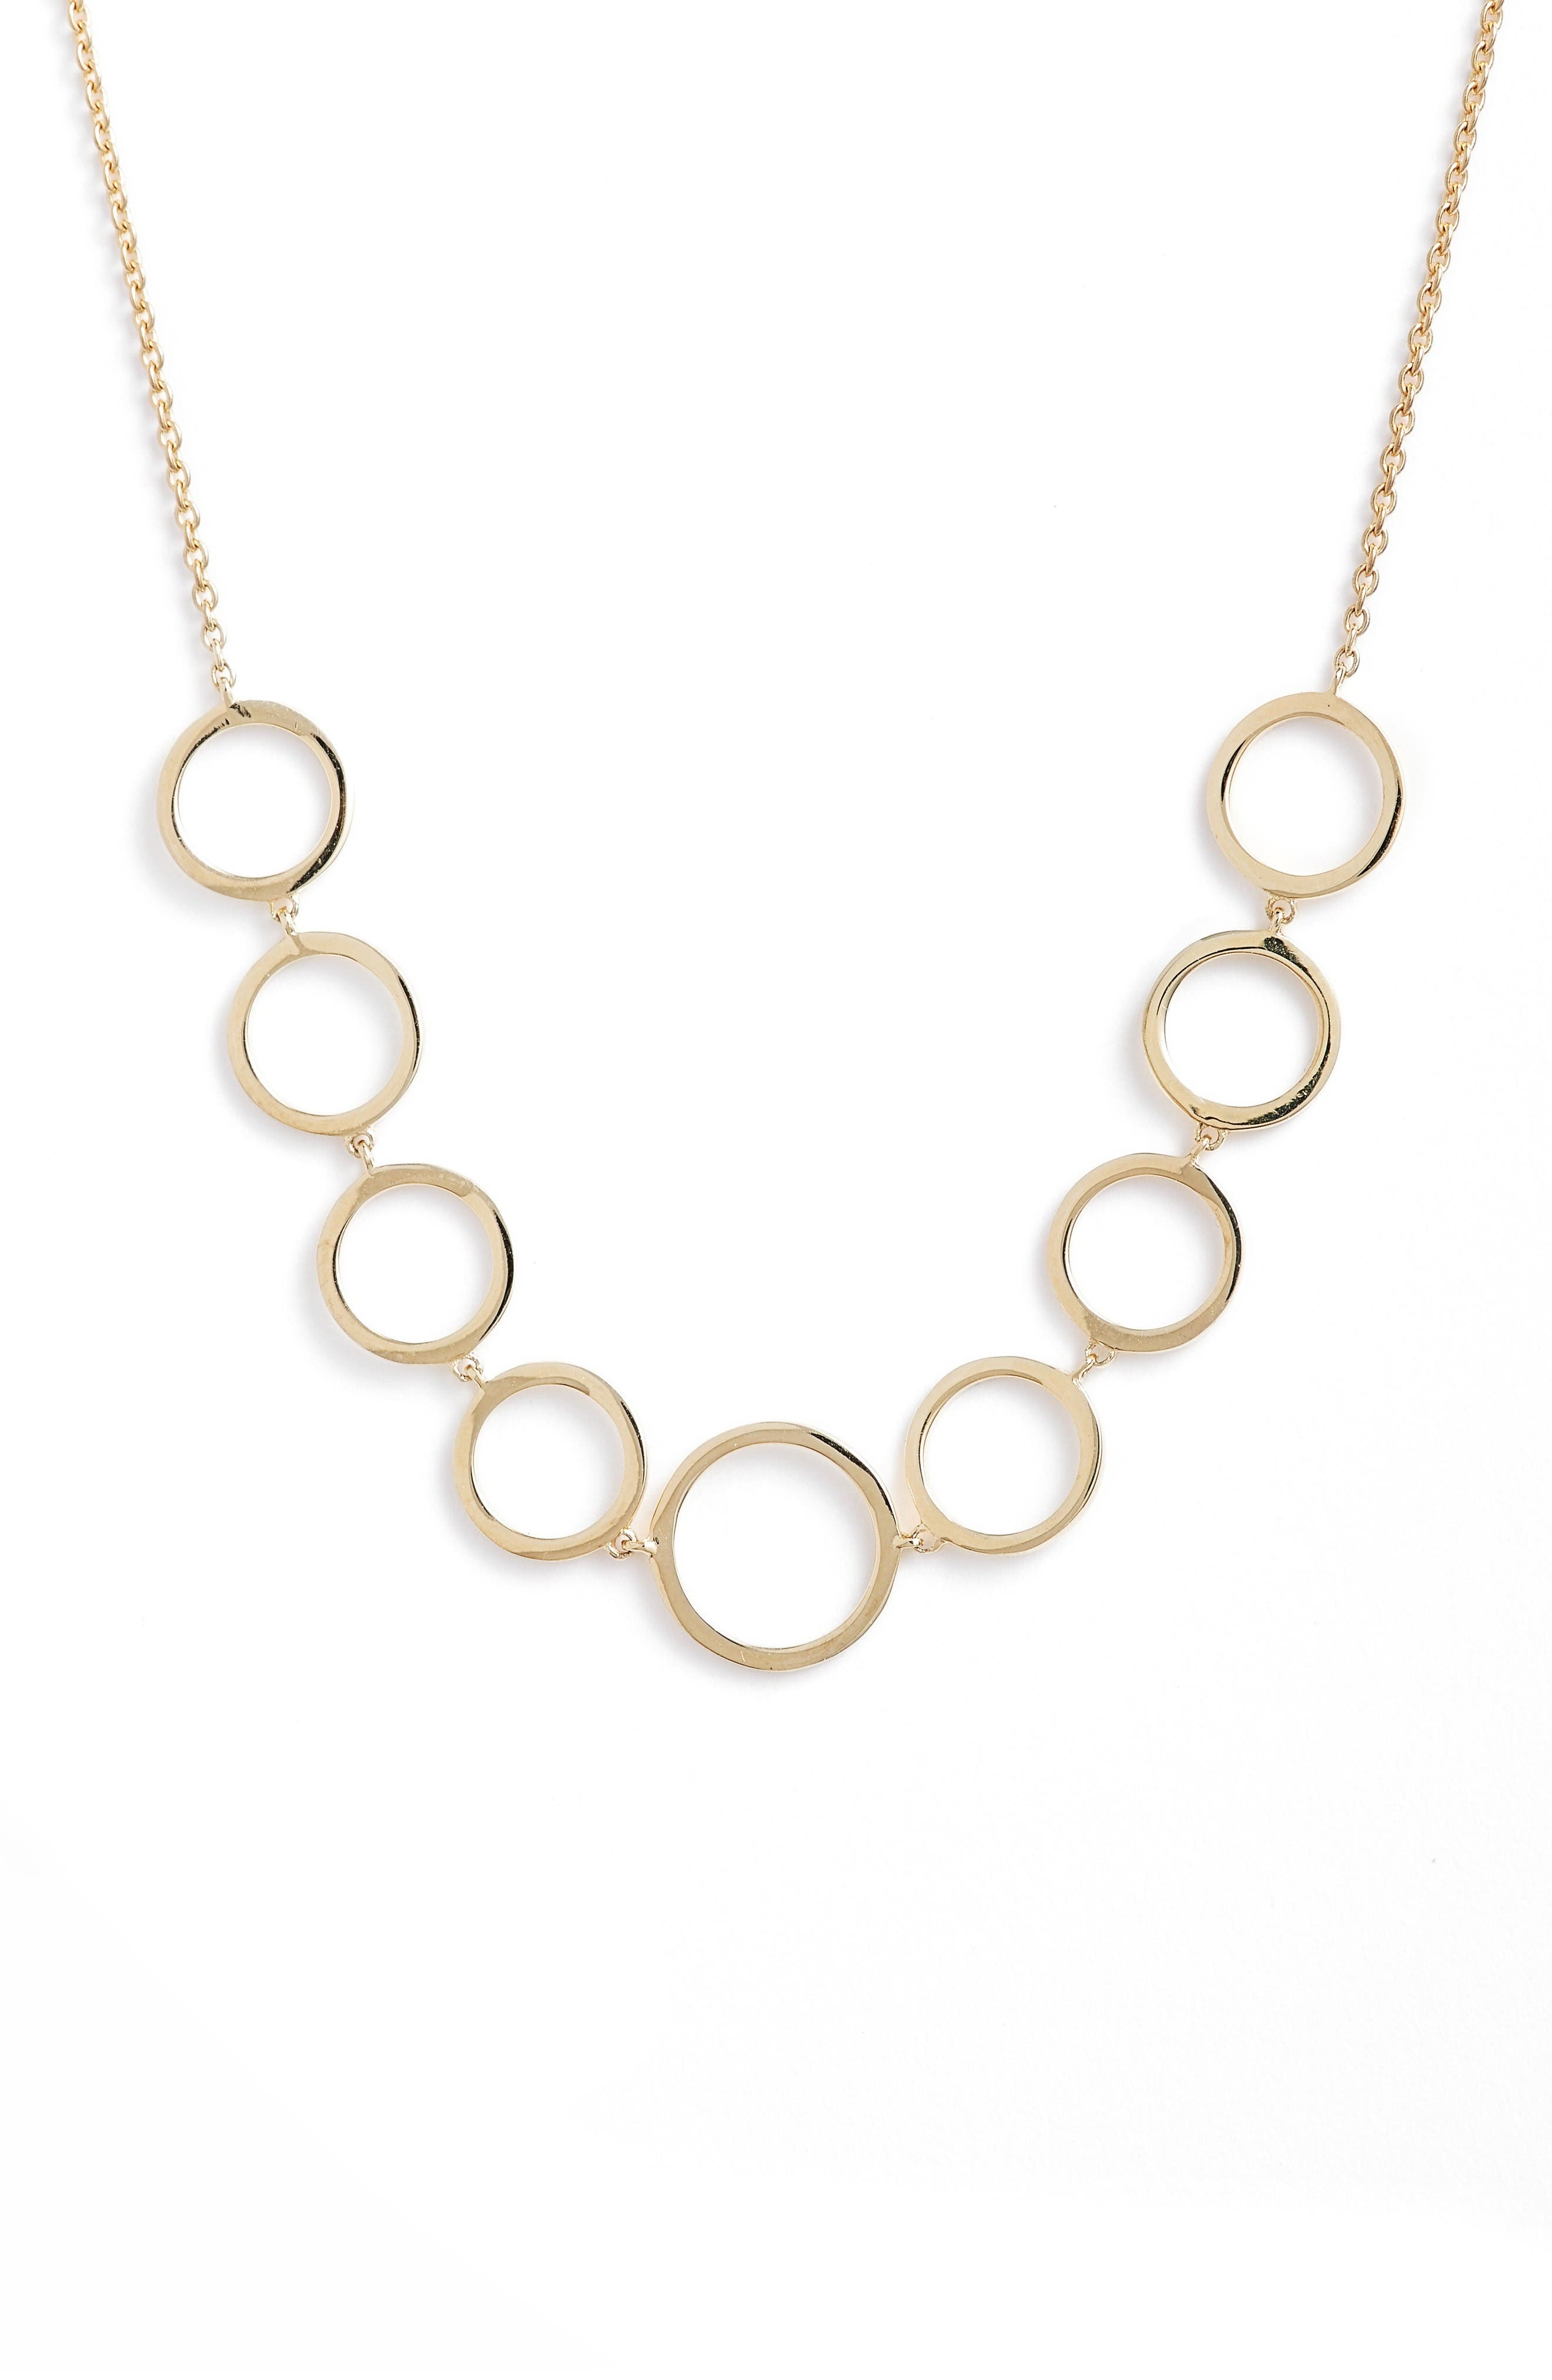 Geo Circle Necklace,                         Main,                         color, Yellow Gold